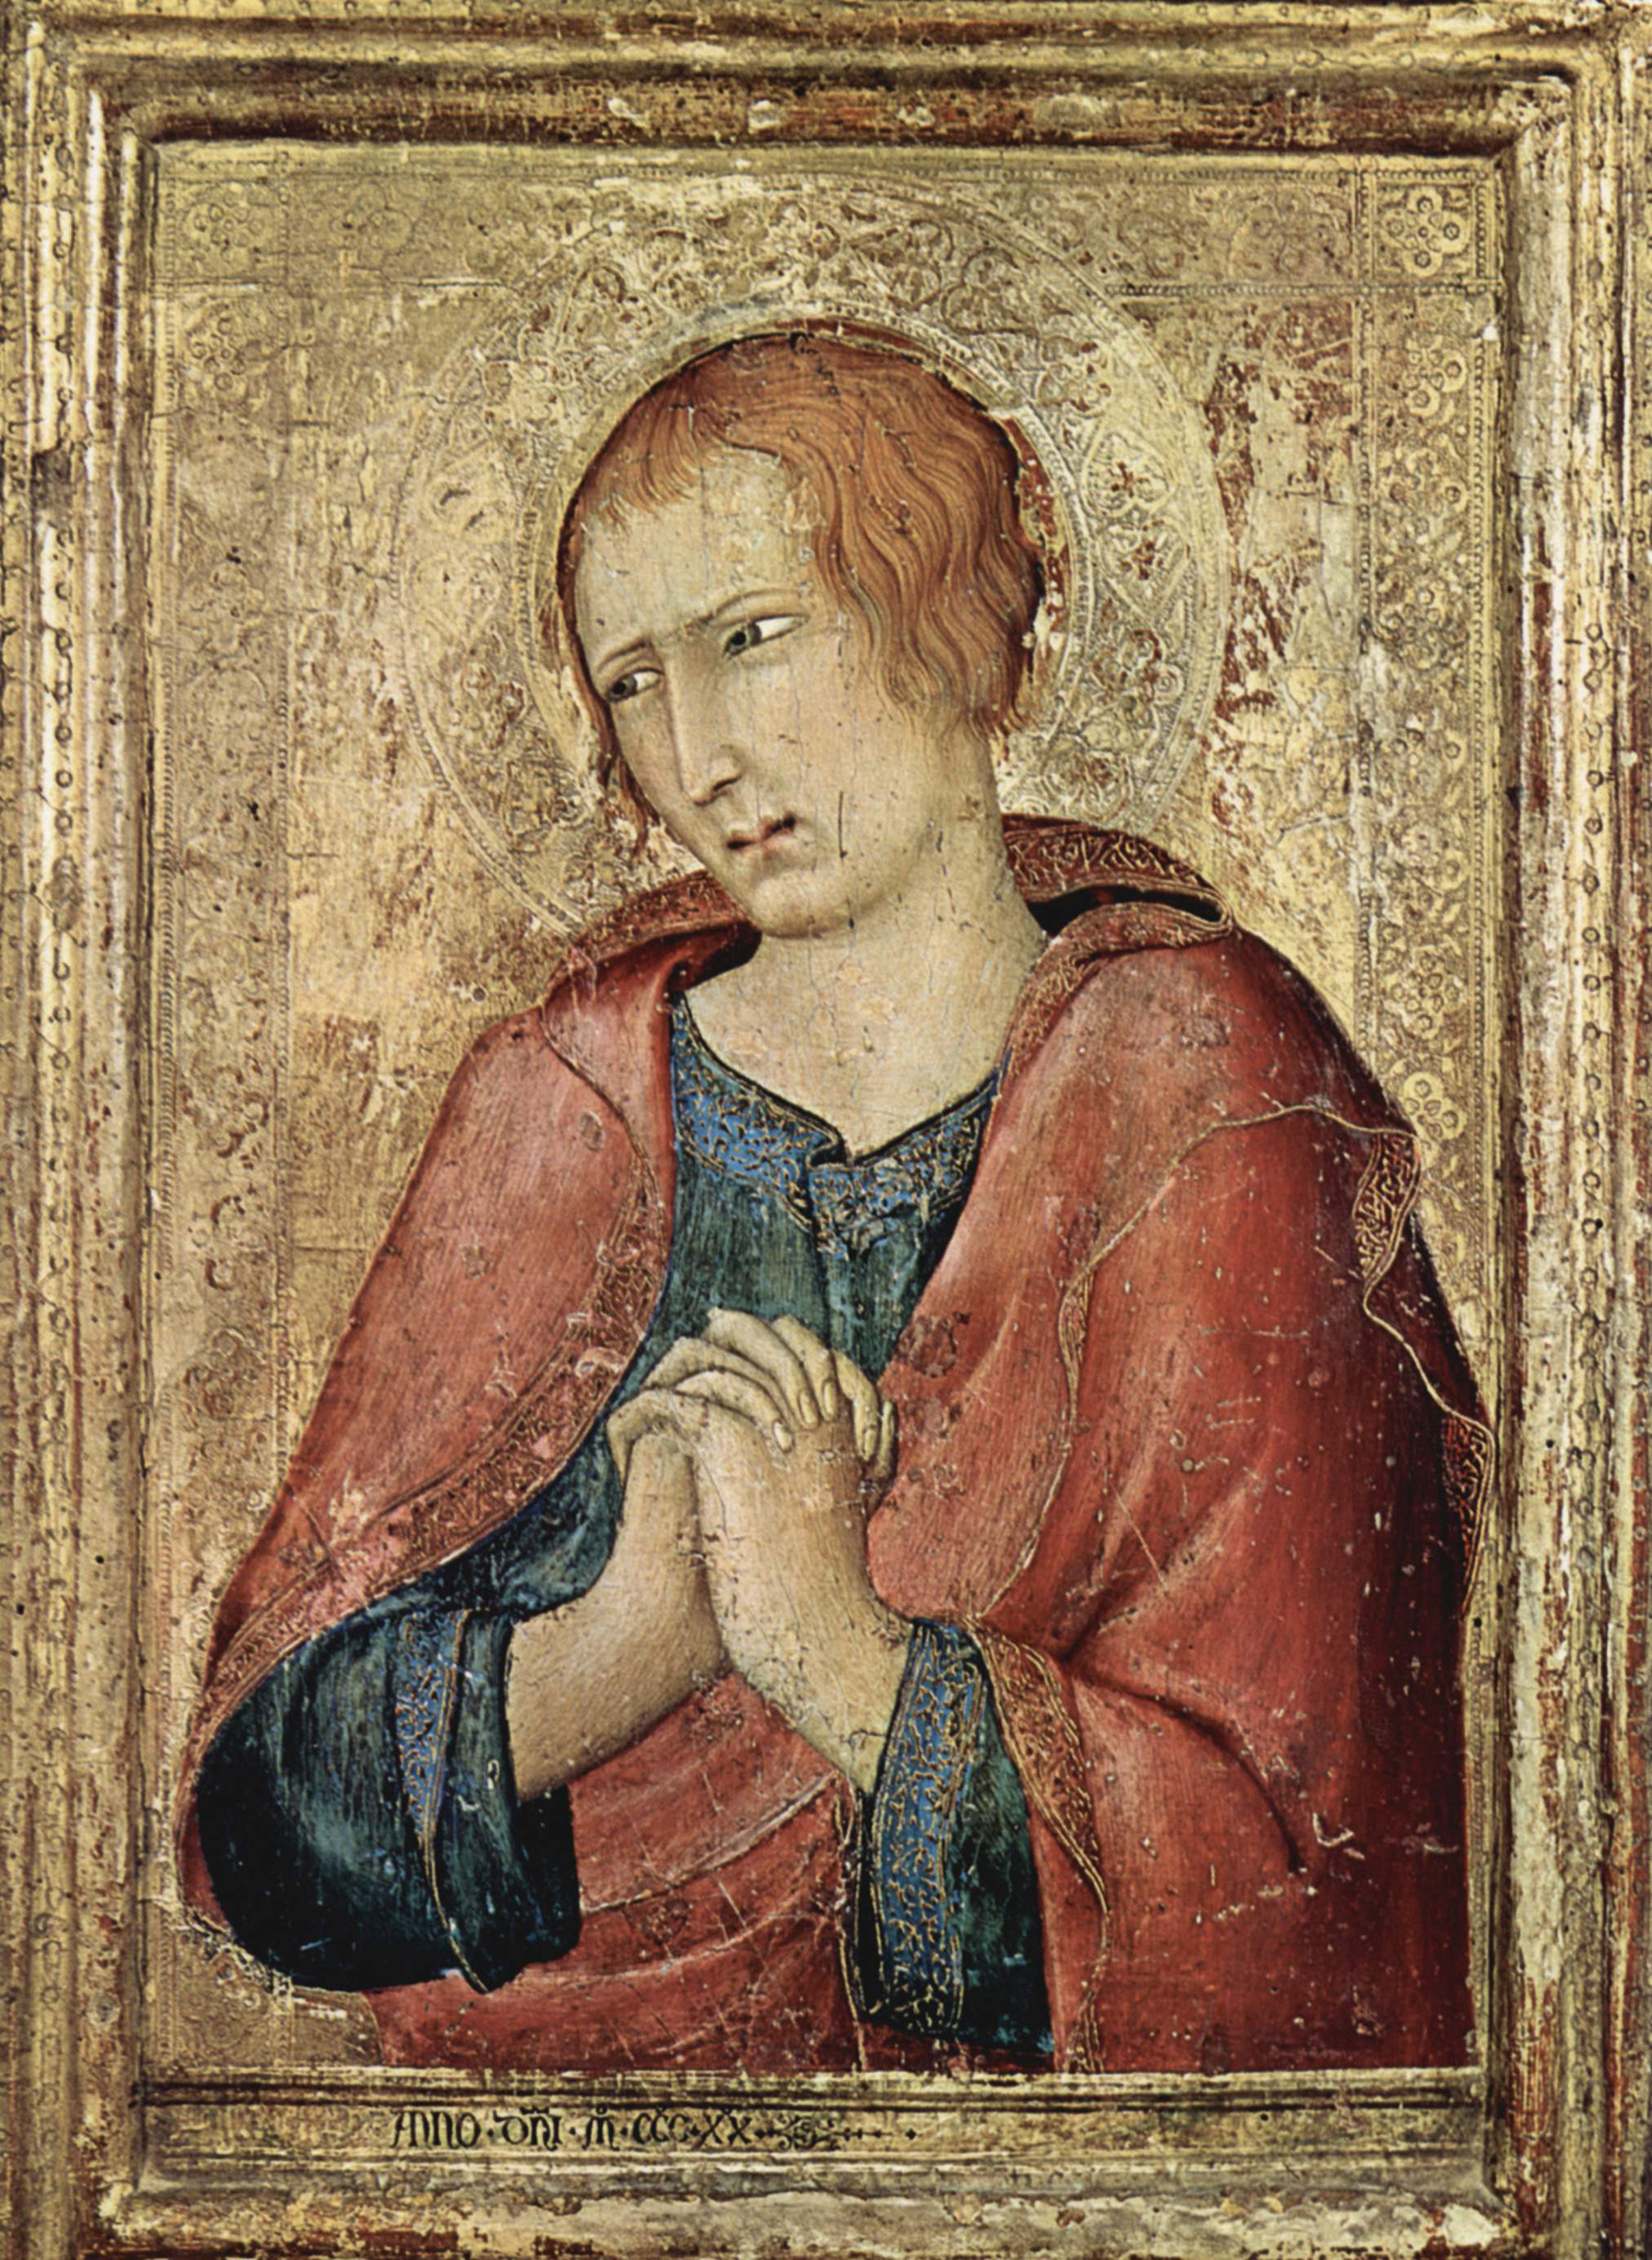 Simone Martini (Siena, 1284 - Avignon, 1344)  St John the Evangelist  Tempera on panel, 1330-1339  34,5 × 24 cm  Barber Institute of Fine Arts German,Birmingham, German